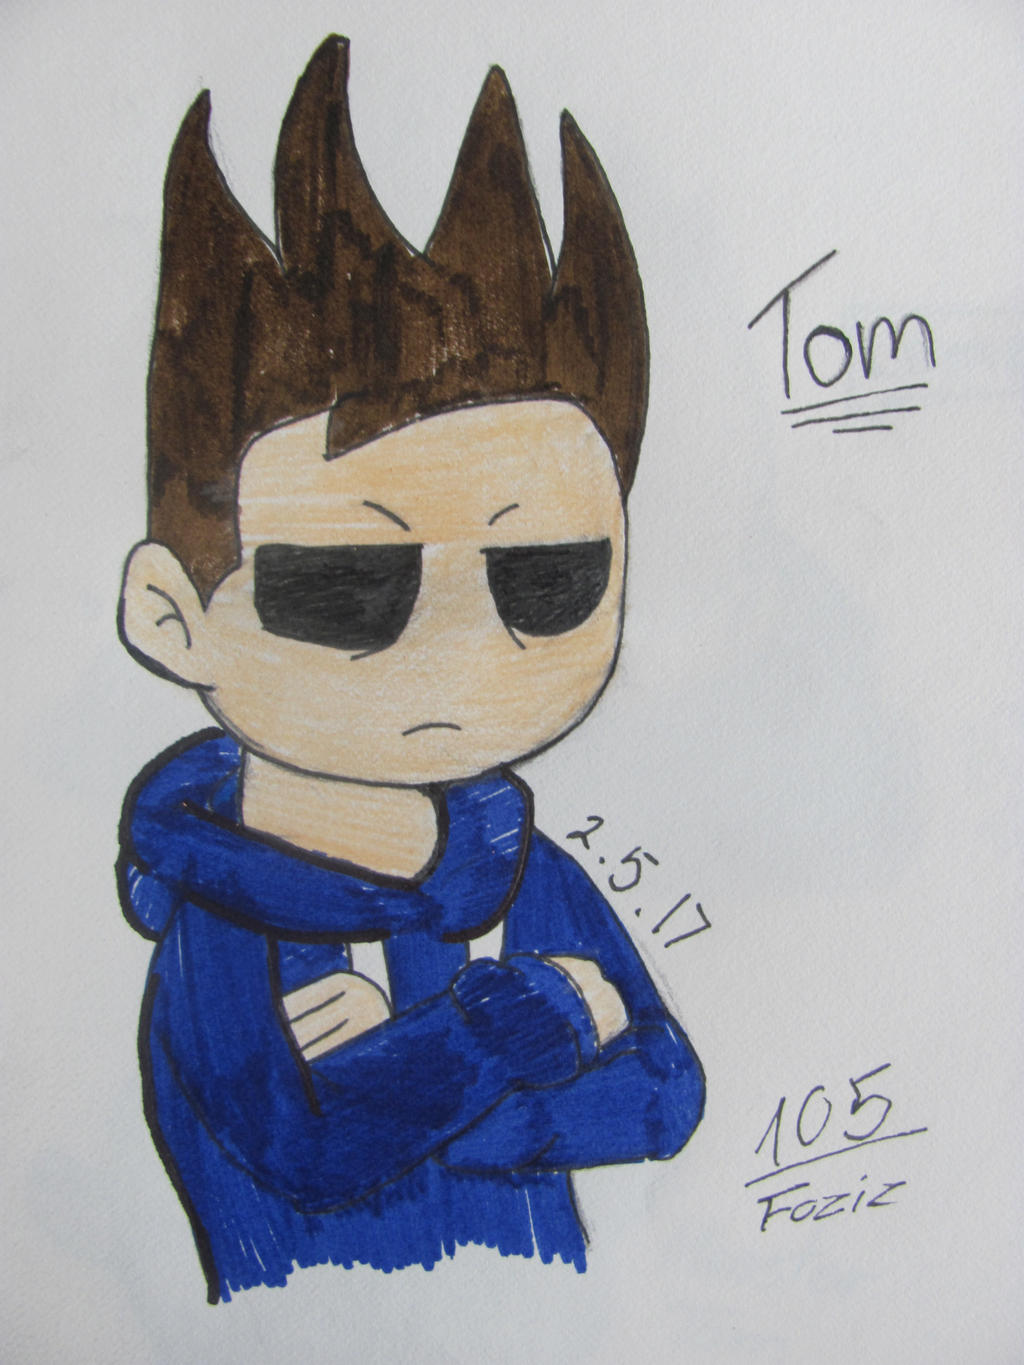 Tom [Eddsworld Fanart] by Foziz105